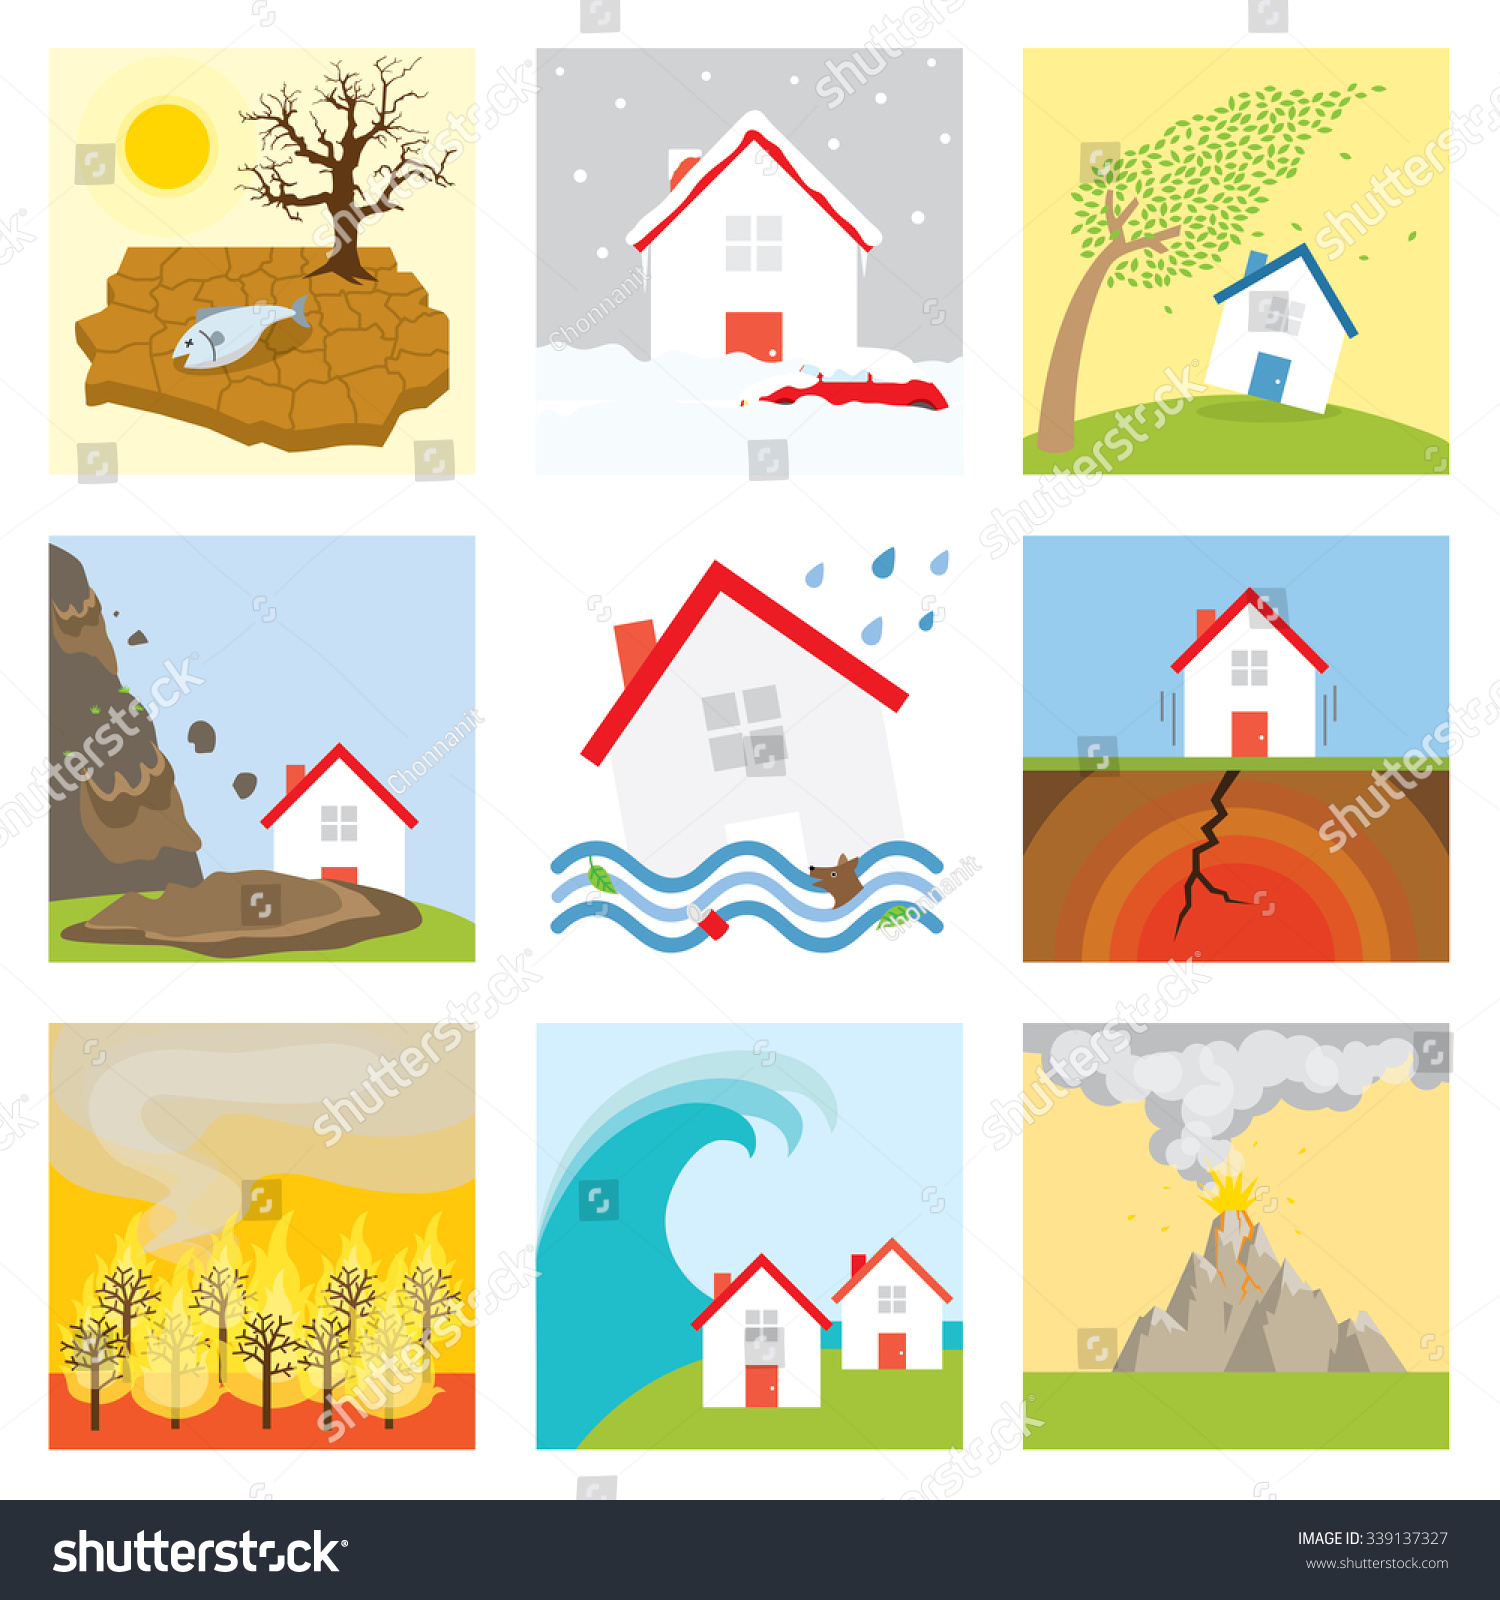 pics for  gt  natural disaster flood clipart Tornado Shelter Sign clip art tornado shelter sign